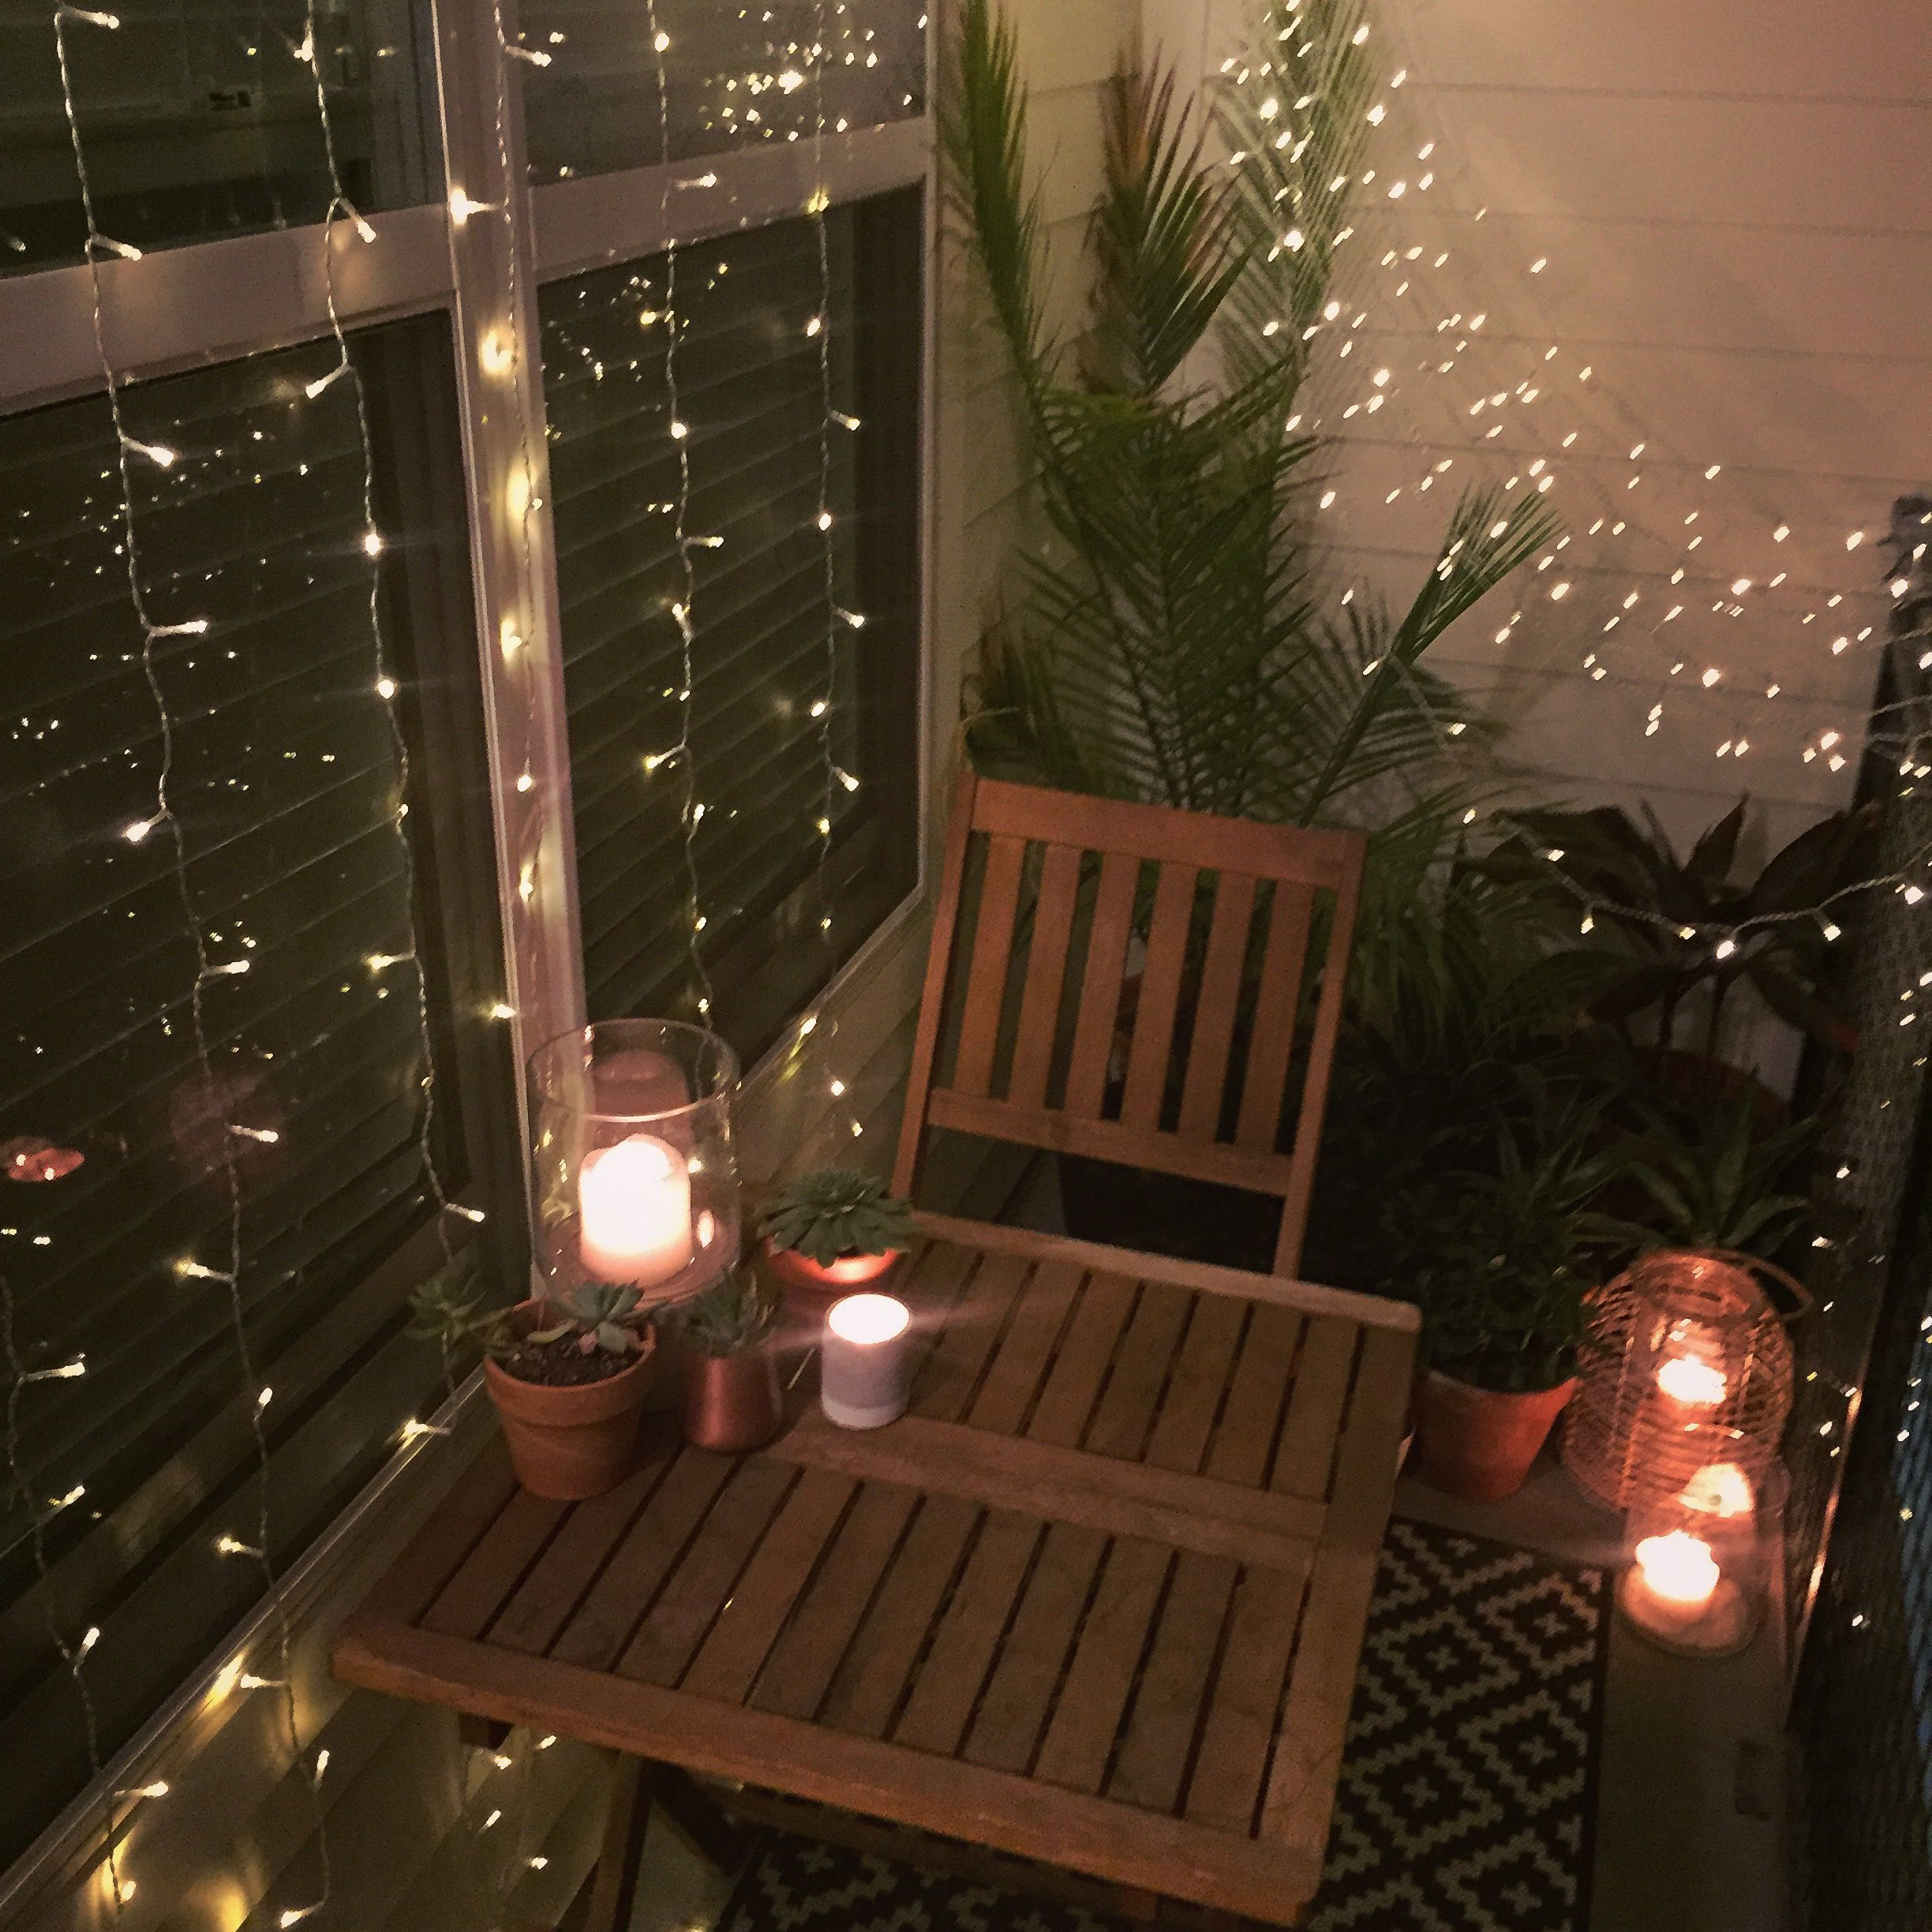 Small Balcony Decor Ideas For An Apartment. Hanging String